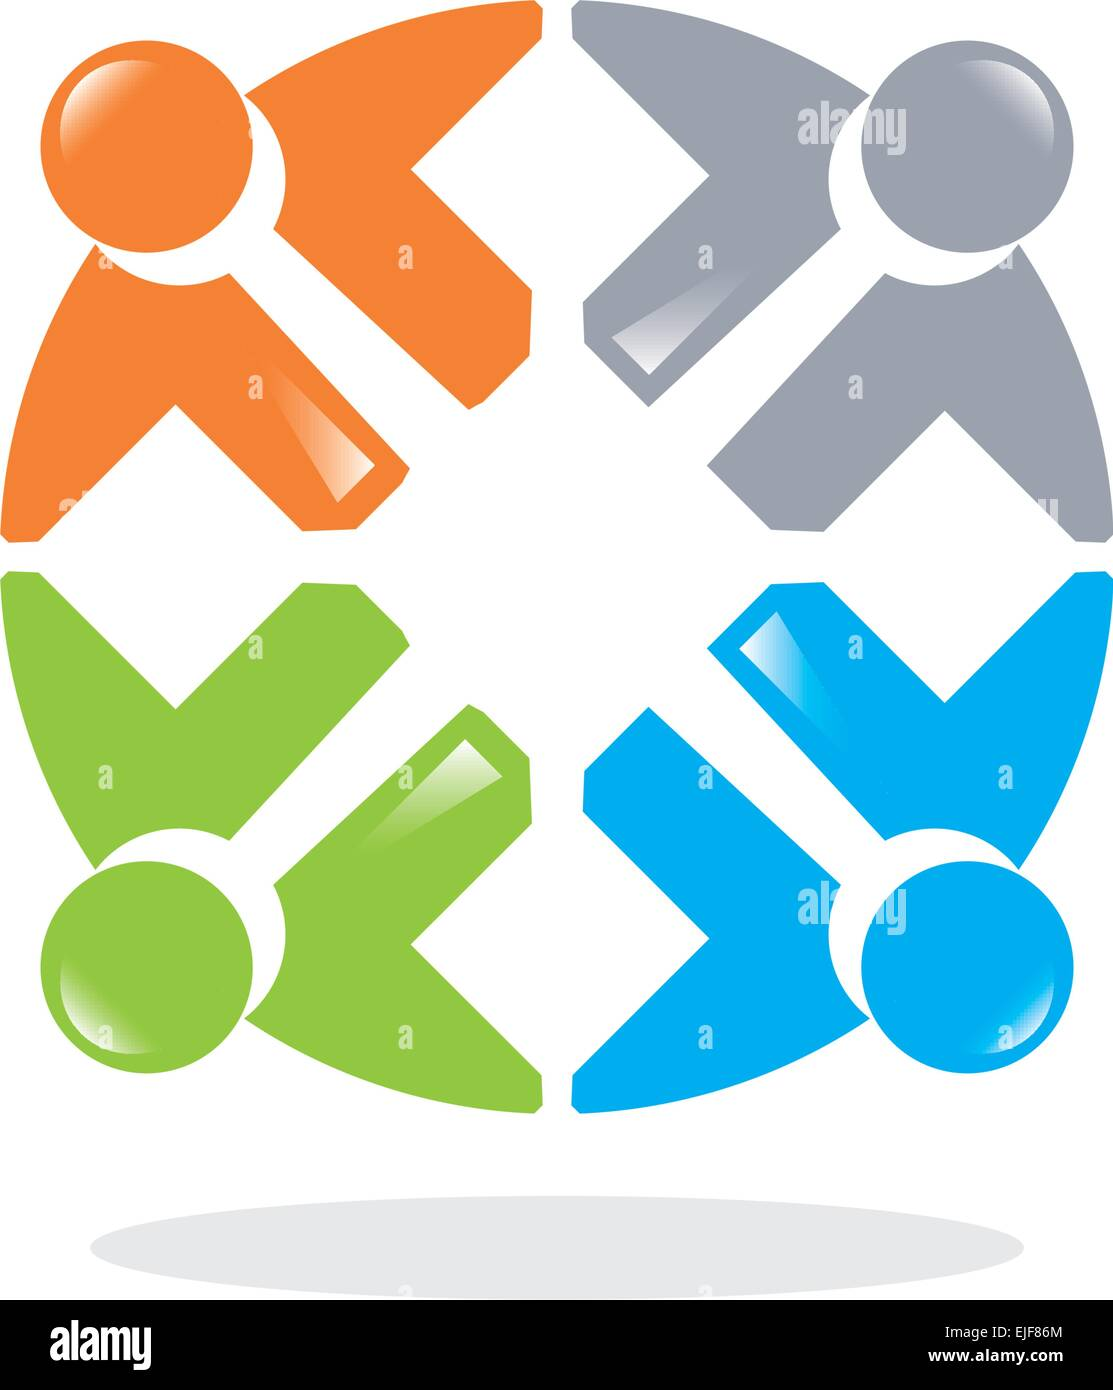 Teamwork, cooperation and people. People Connected Symbols. Stock Vector